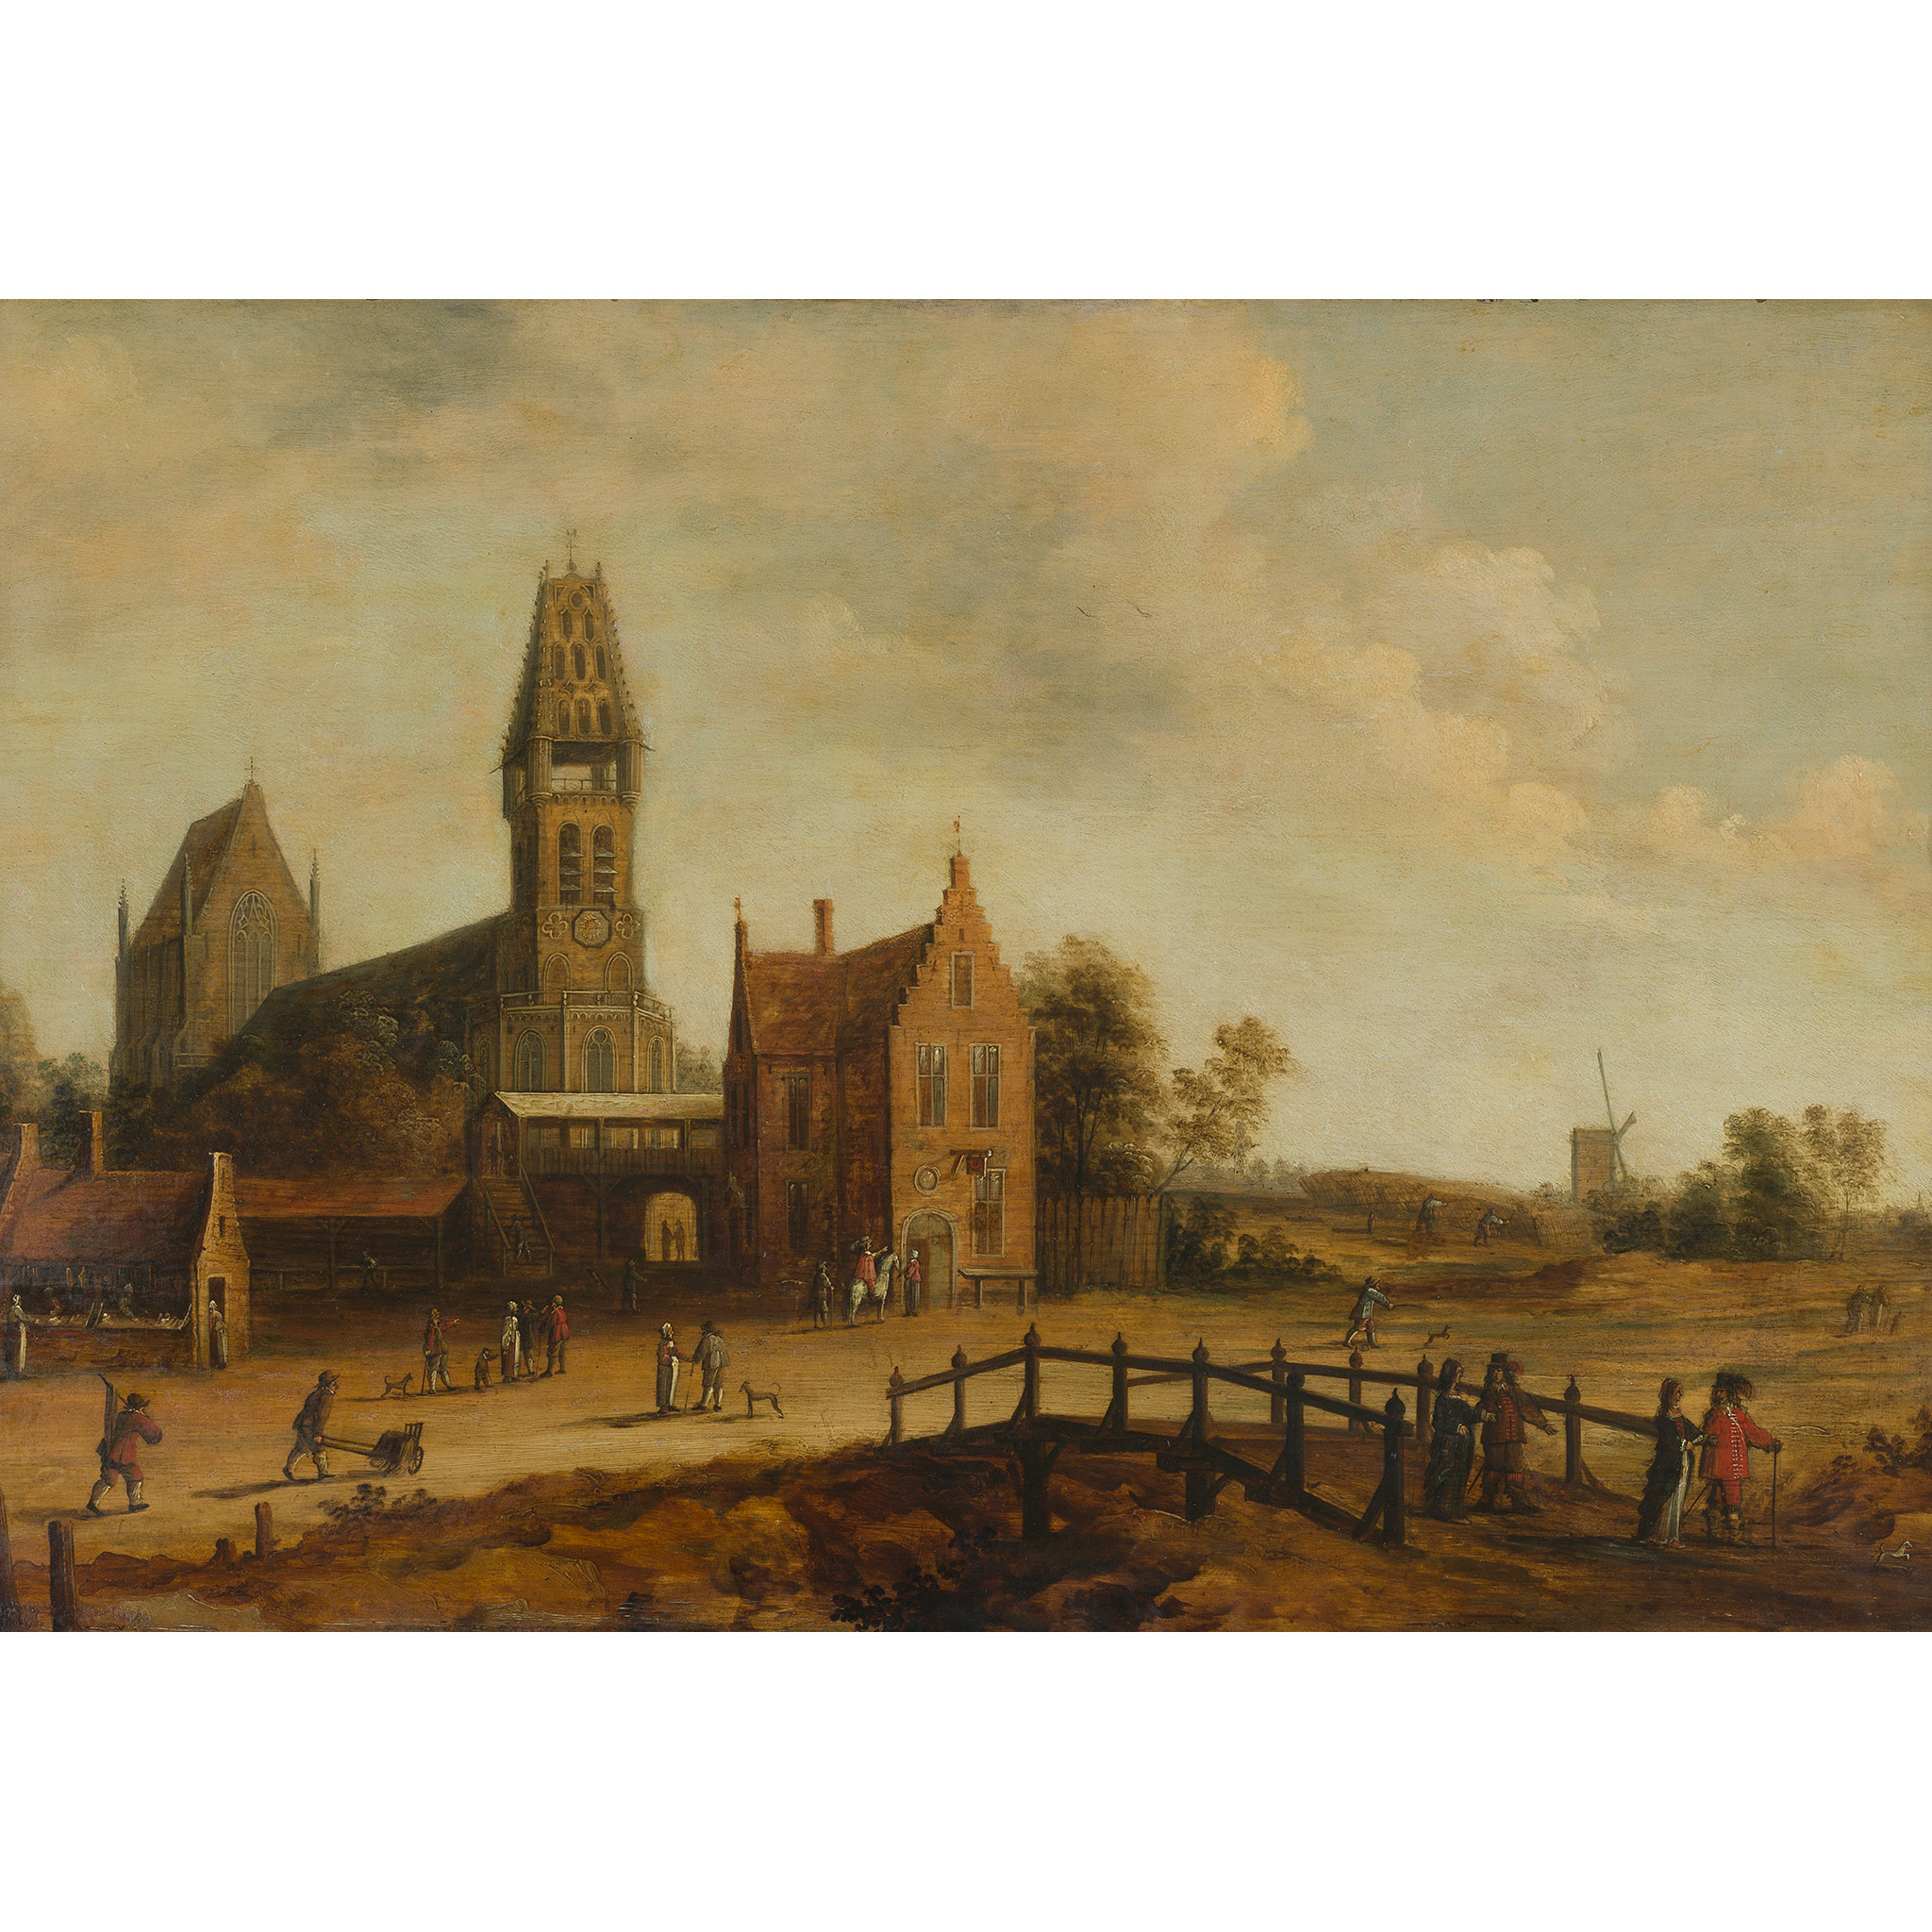 17TH CENTURY DUTCH SCHOOL ON THE OUTSKIRTS OF A SMALL DUTCH TOWN